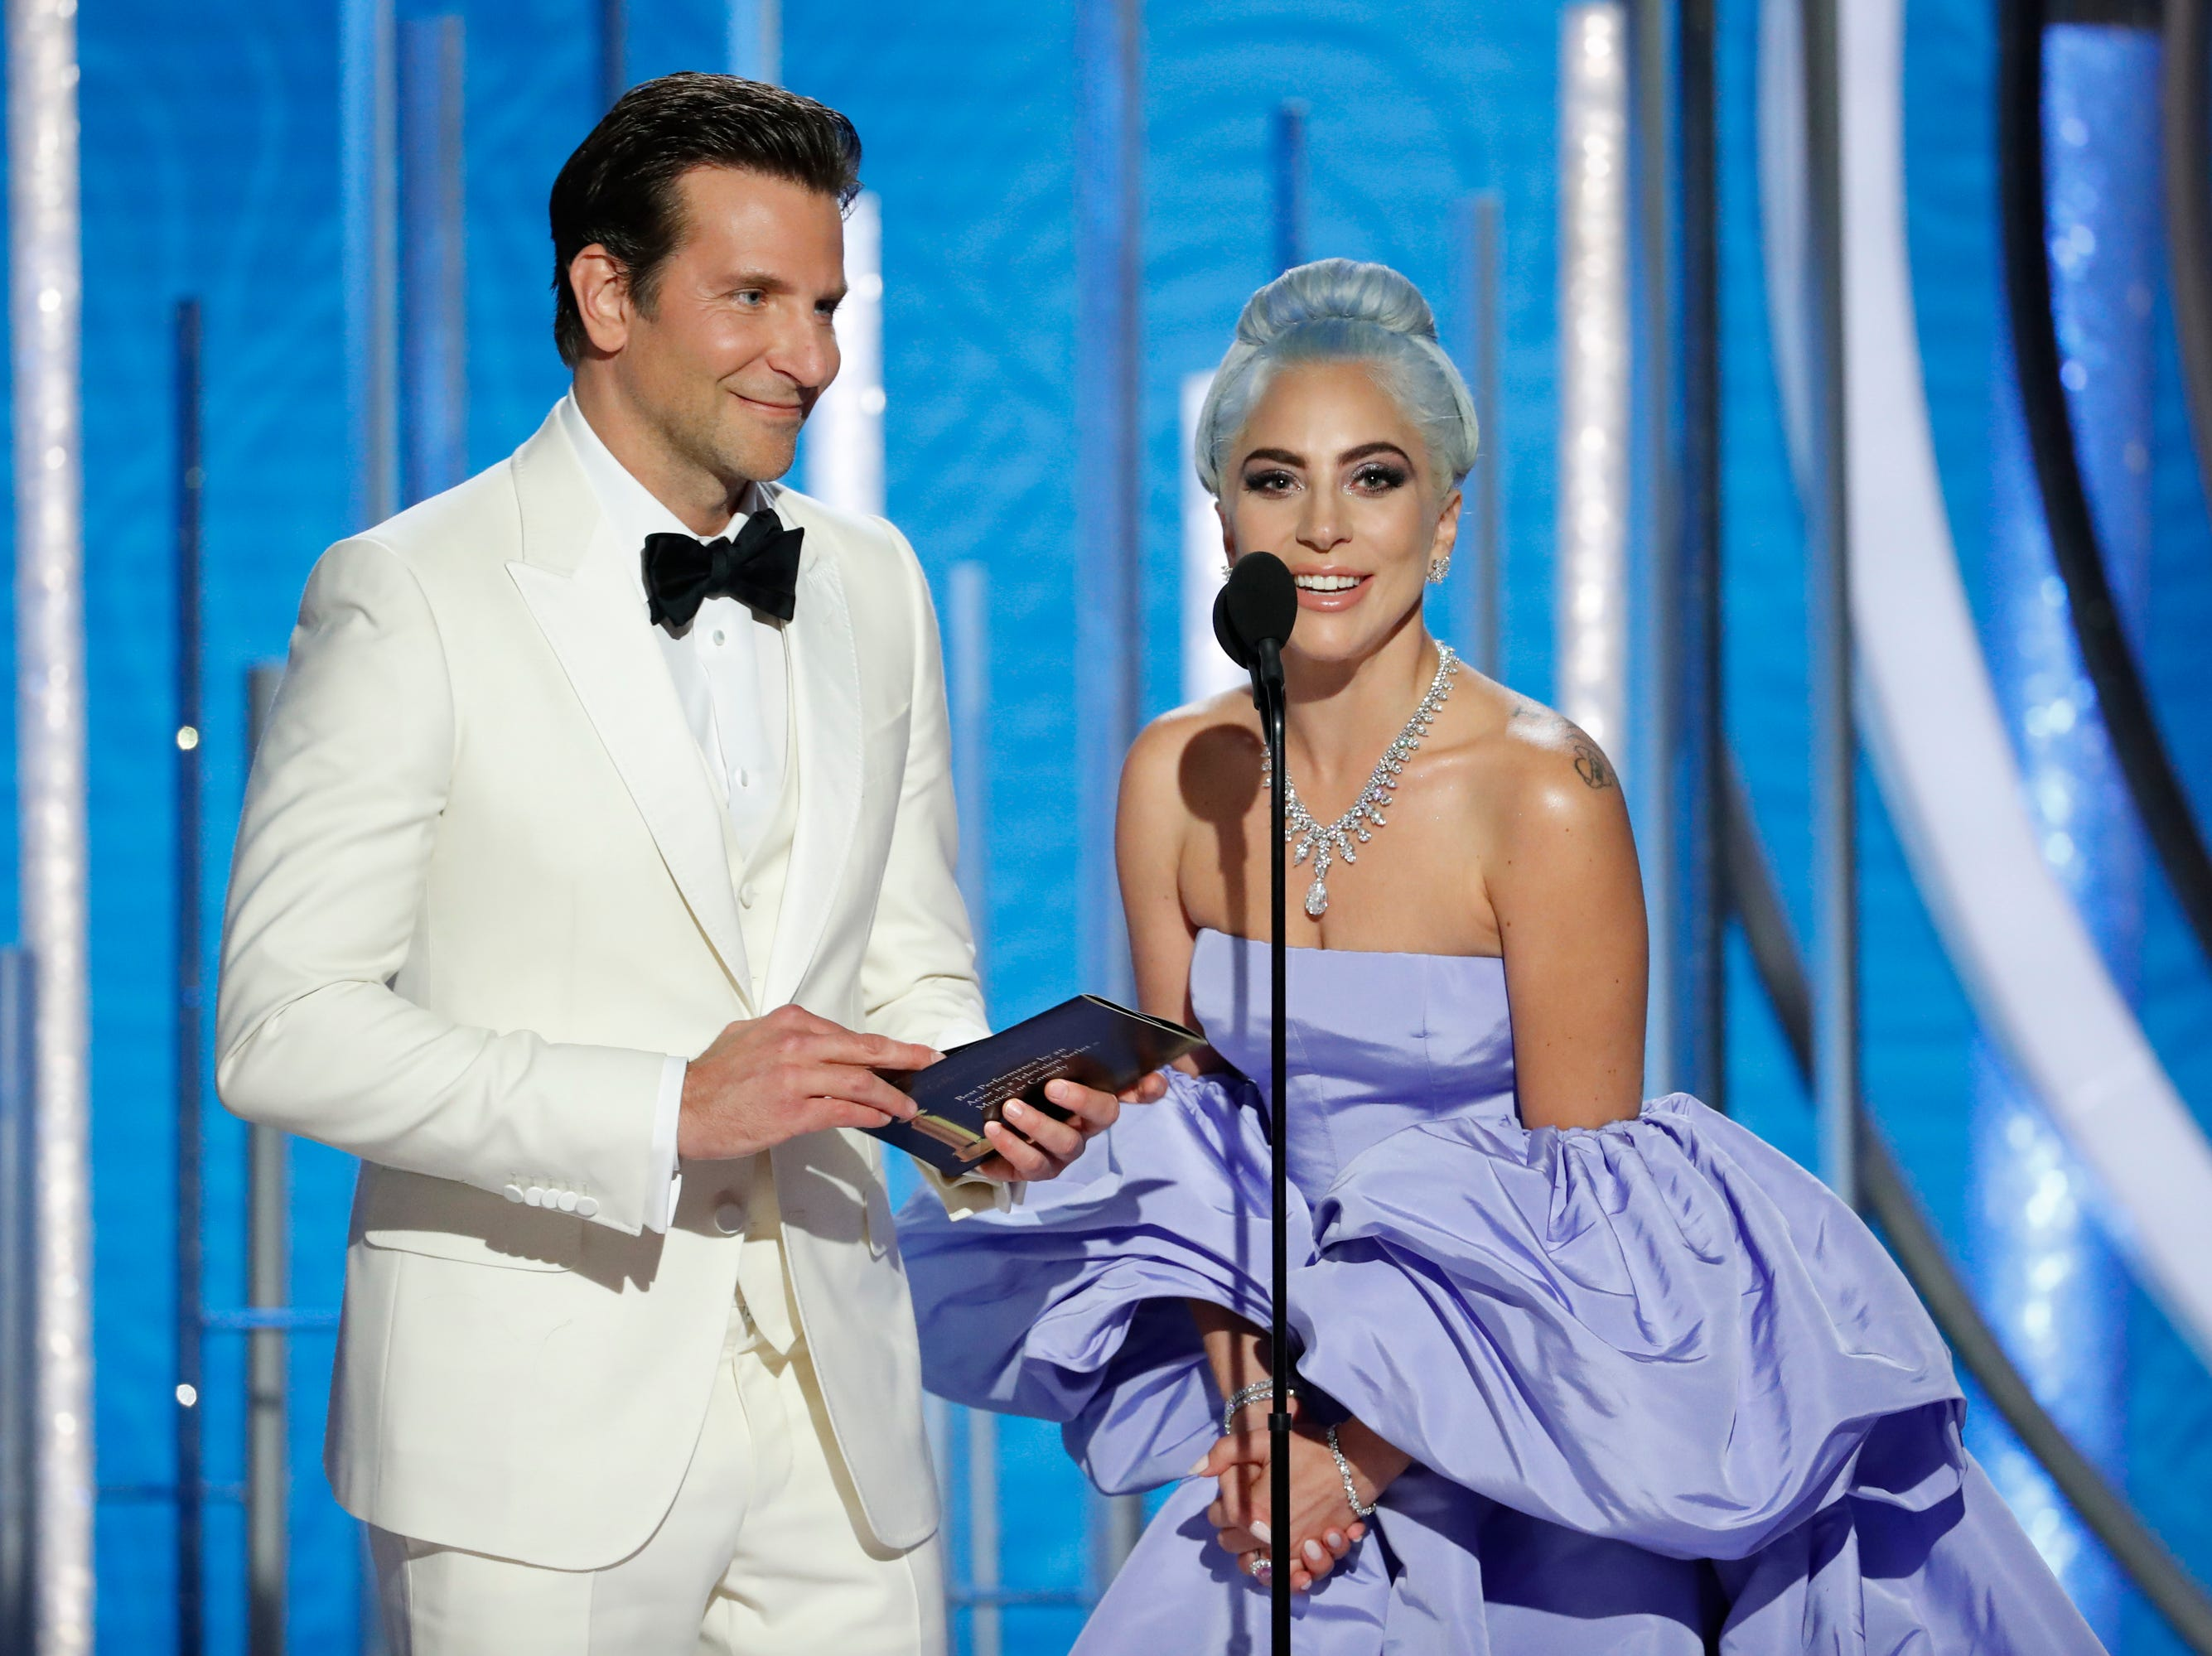 BEVERLY HILLS, CALIFORNIA - JANUARY 06: In this handout photo provided by NBCUniversal, Presenters  Bradley Cooper and Lady Gaga  speak onstage during the 76th Annual Golden Globe Awards at The Beverly Hilton Hotel on January 06, 2019 in Beverly Hills, California.  (Photo by Paul Drinkwater/NBCUniversal via Getty Images)